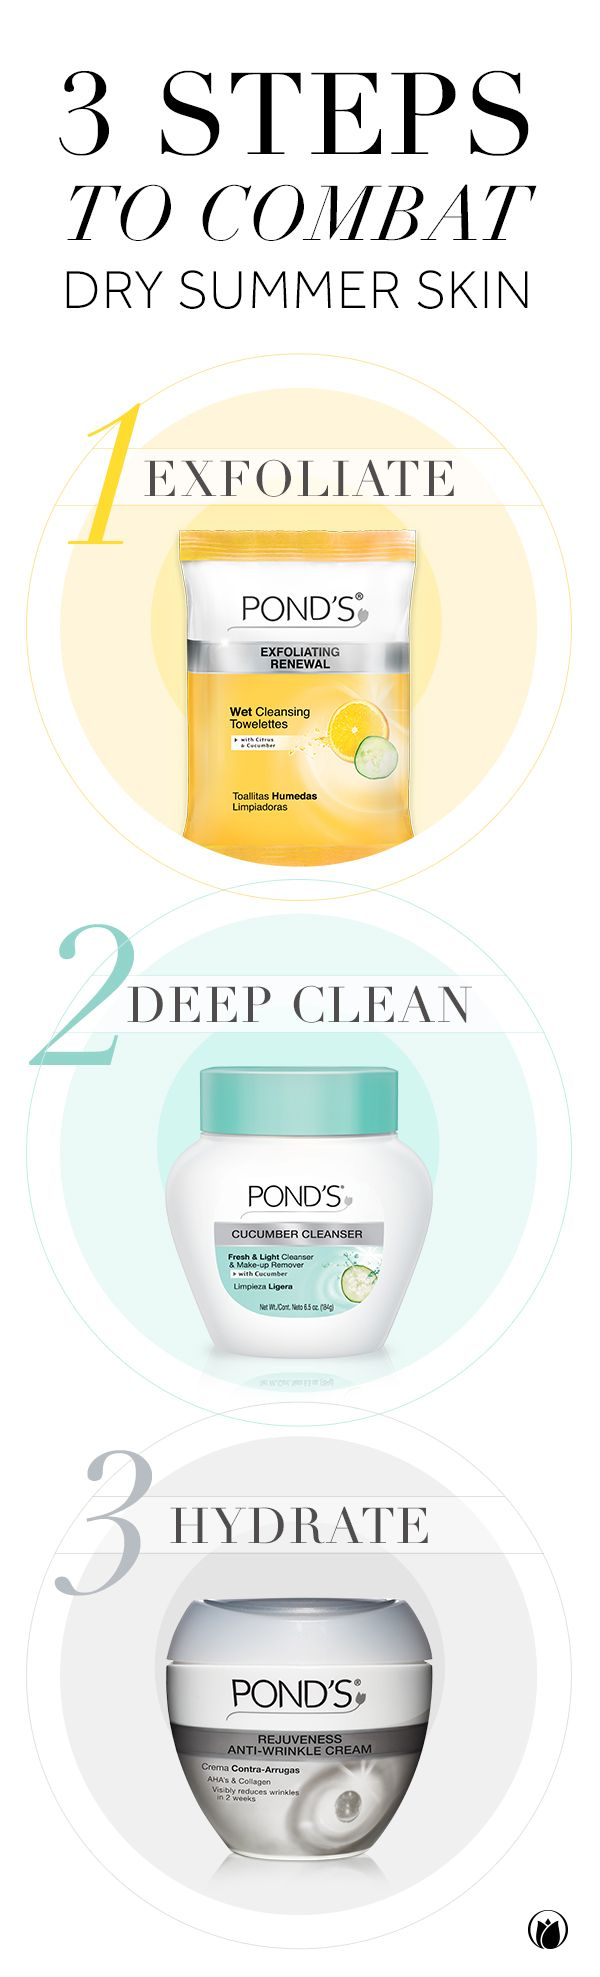 Winter isn't the only season that causes dry skin. Summer temperatures can strip skin of moisture and essential oils but we have an easy skincare routine to treat dry skin on your face at home. Cleanse without removing essential oils with POND'S Cold Cream Cleanser for a fresh foundation. Apply a lightweight moisturizer such as POND'S Rejuveness to re-hydrate skin. Exfoliate to polish away dull, dry skin & for instant hydration with POND'S Exfoliating Wet Cleansing Towelettes.